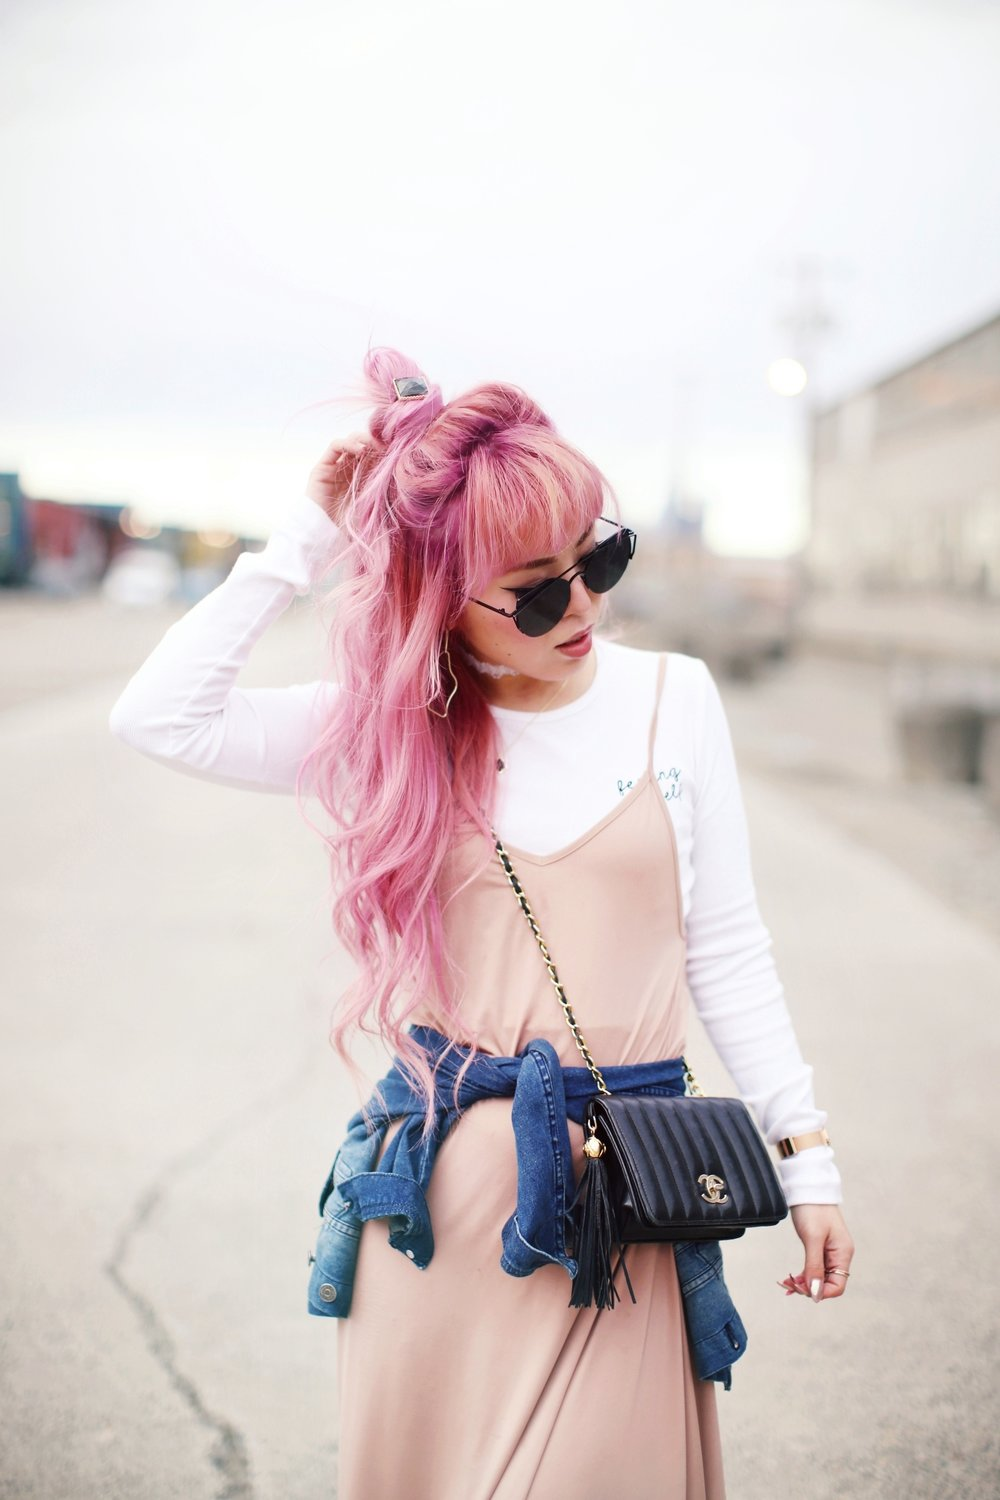 Forever 21 Long sleeve crop top_ZARA blush slip dress_Adidas Super Star sneakers_Vintage Chanel crossbodybag_Daniel Wellington Petite rose gold watch_Guess denim jacket_Aika's Love Closet_Seattle Fashion style blogger_Japanese_pink hair_topknot hair-soft curled hair-beach wavy hair